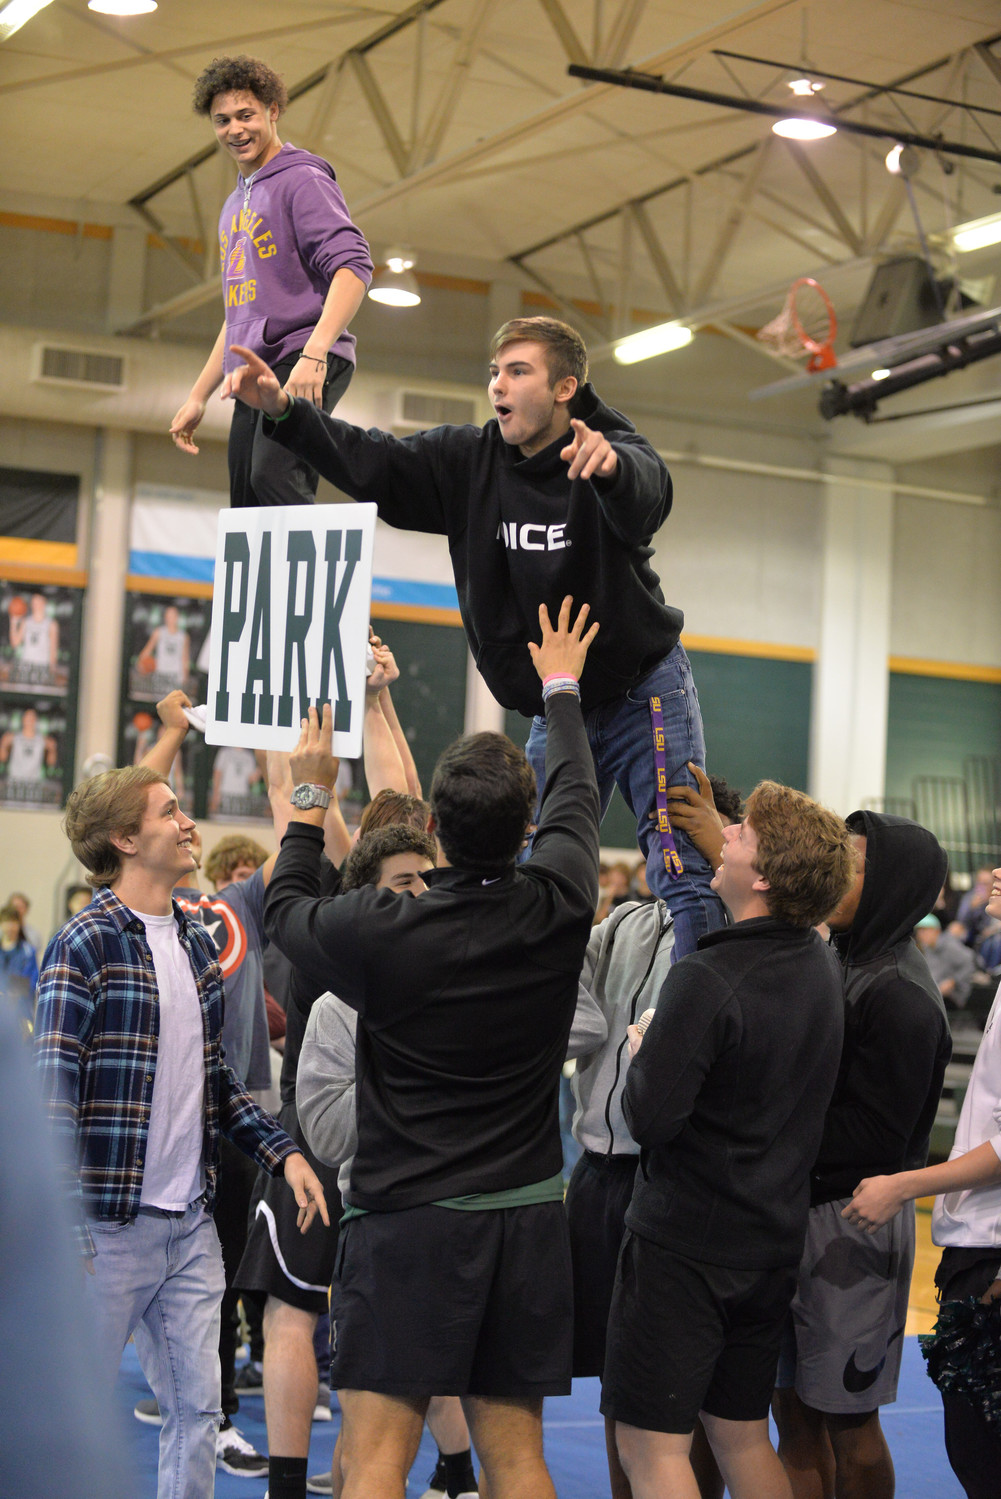 CPHS male athletes pay tribute to the UIL Champion Cheerleaders by attempting a cheer stunt, Tuesday, Jan. 23.